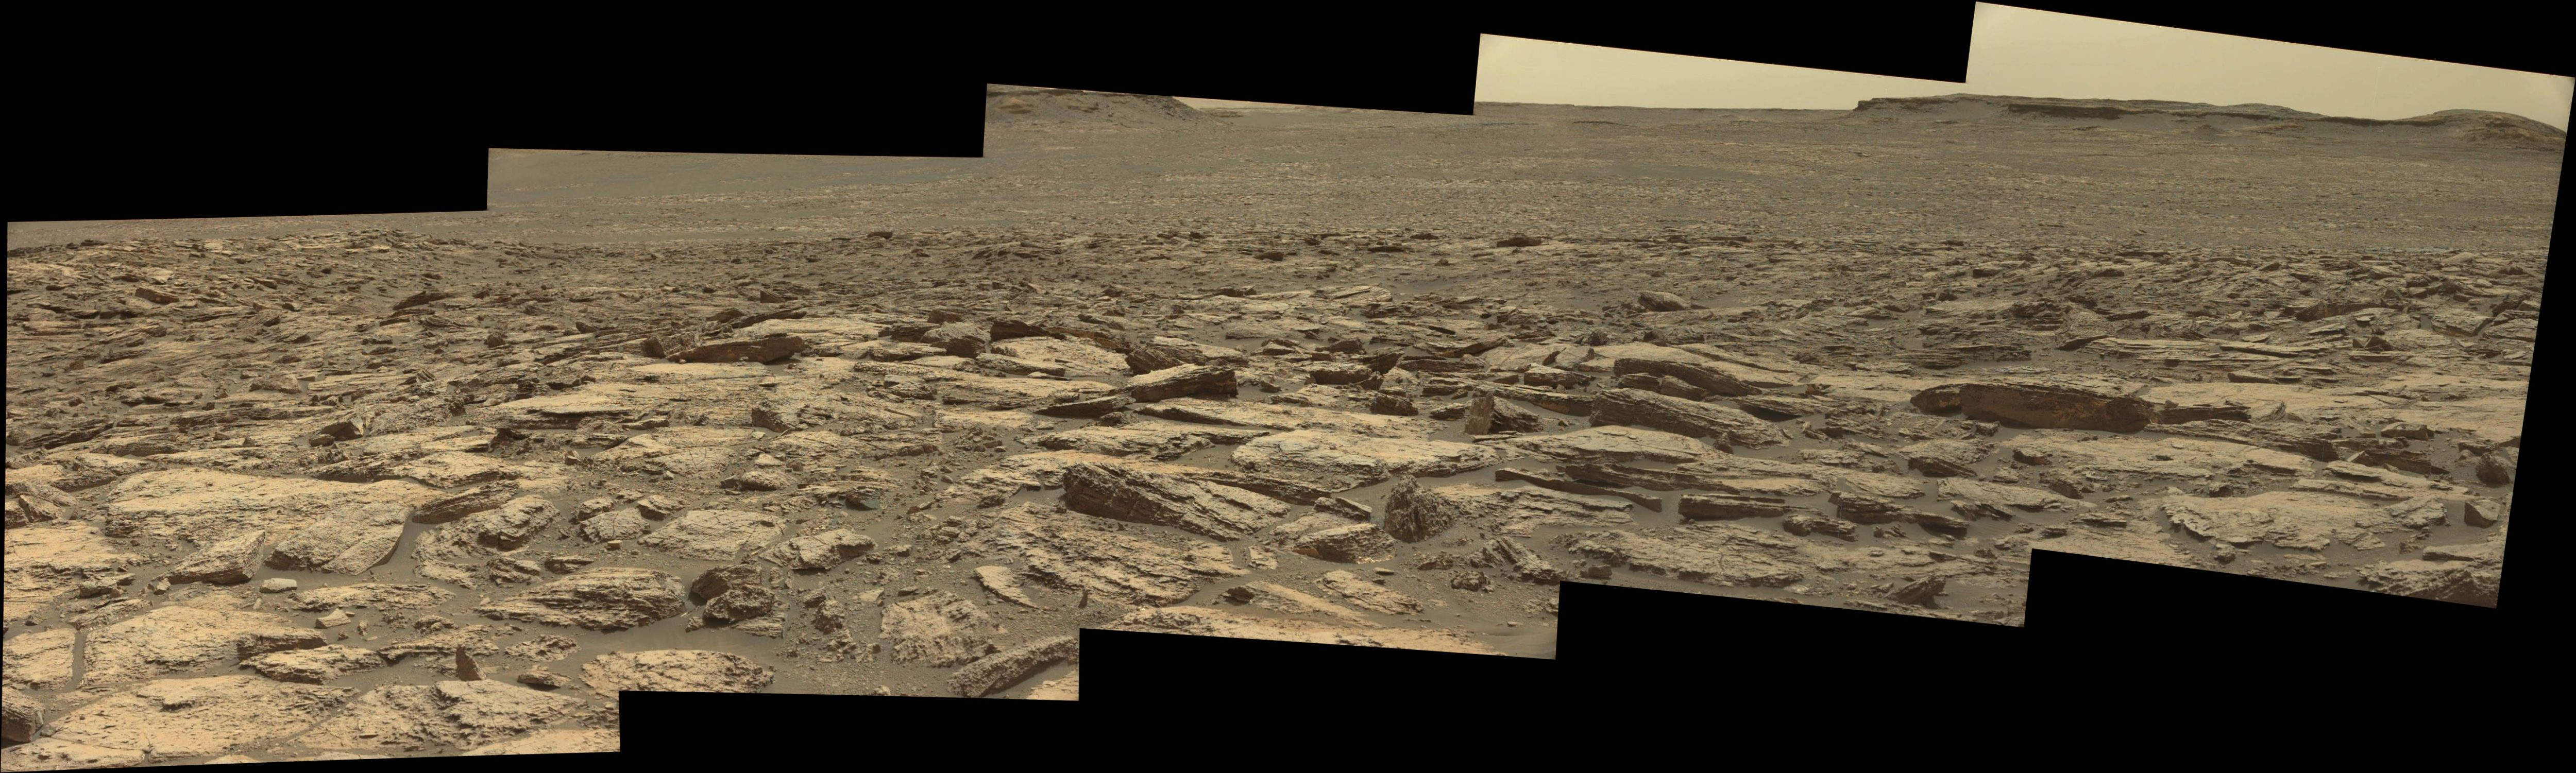 panoramic-curiosity-rover-view-1-sol-1489-was-life-on-mars